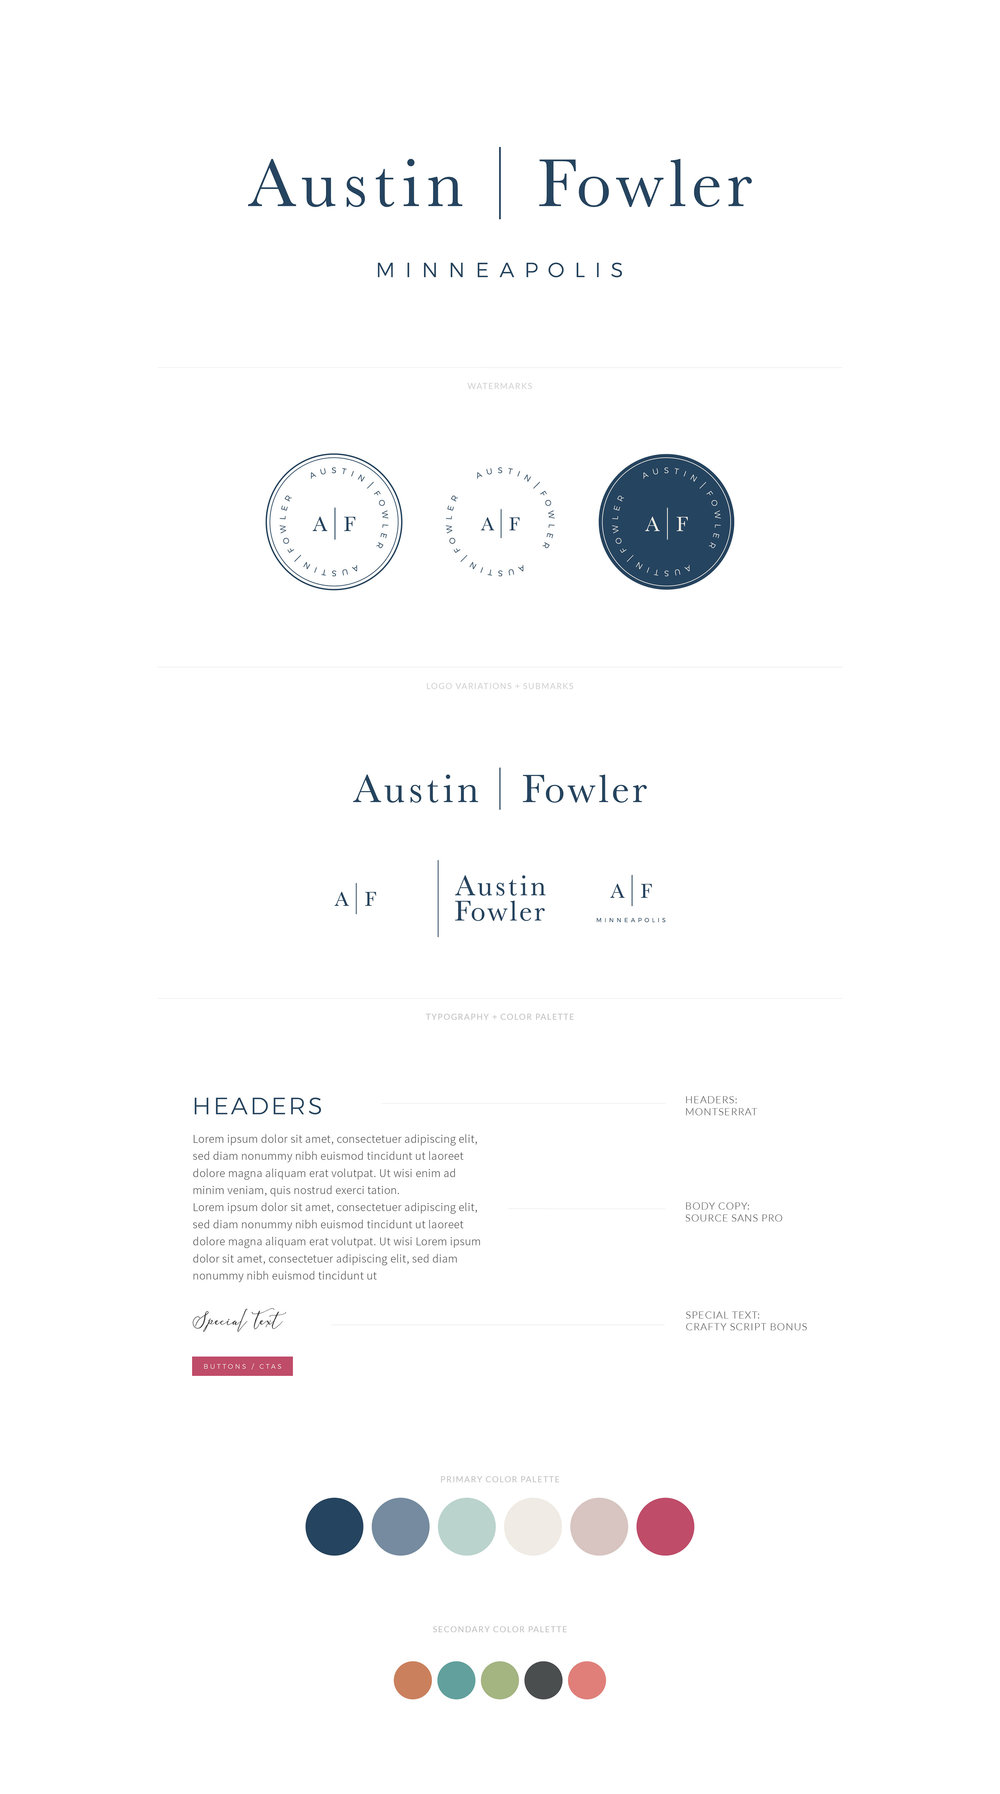 Austin Fowler Brand Board | Logo, Watermark, Submark, Favicon, Font Styling, Color Palette | Sophisticated Purses and Diaper Bags for Busy Moms  |  Branding by AllieMarie Design